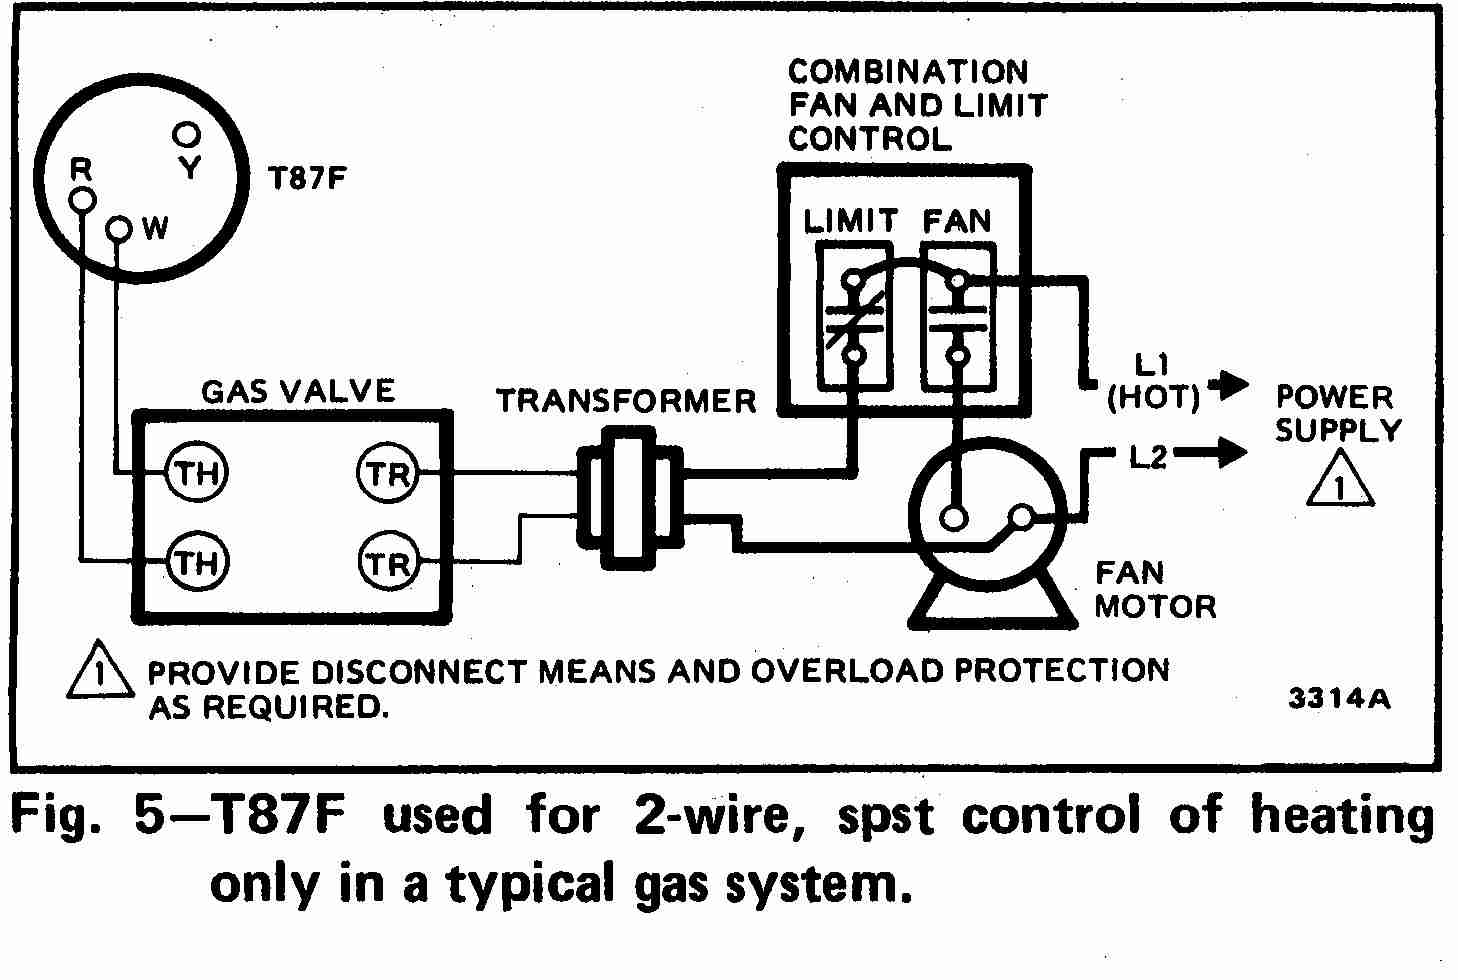 TT_T87F_0002_2Wg_DJF room thermostat wiring diagrams for hvac systems gas heater wiring diagram at bayanpartner.co